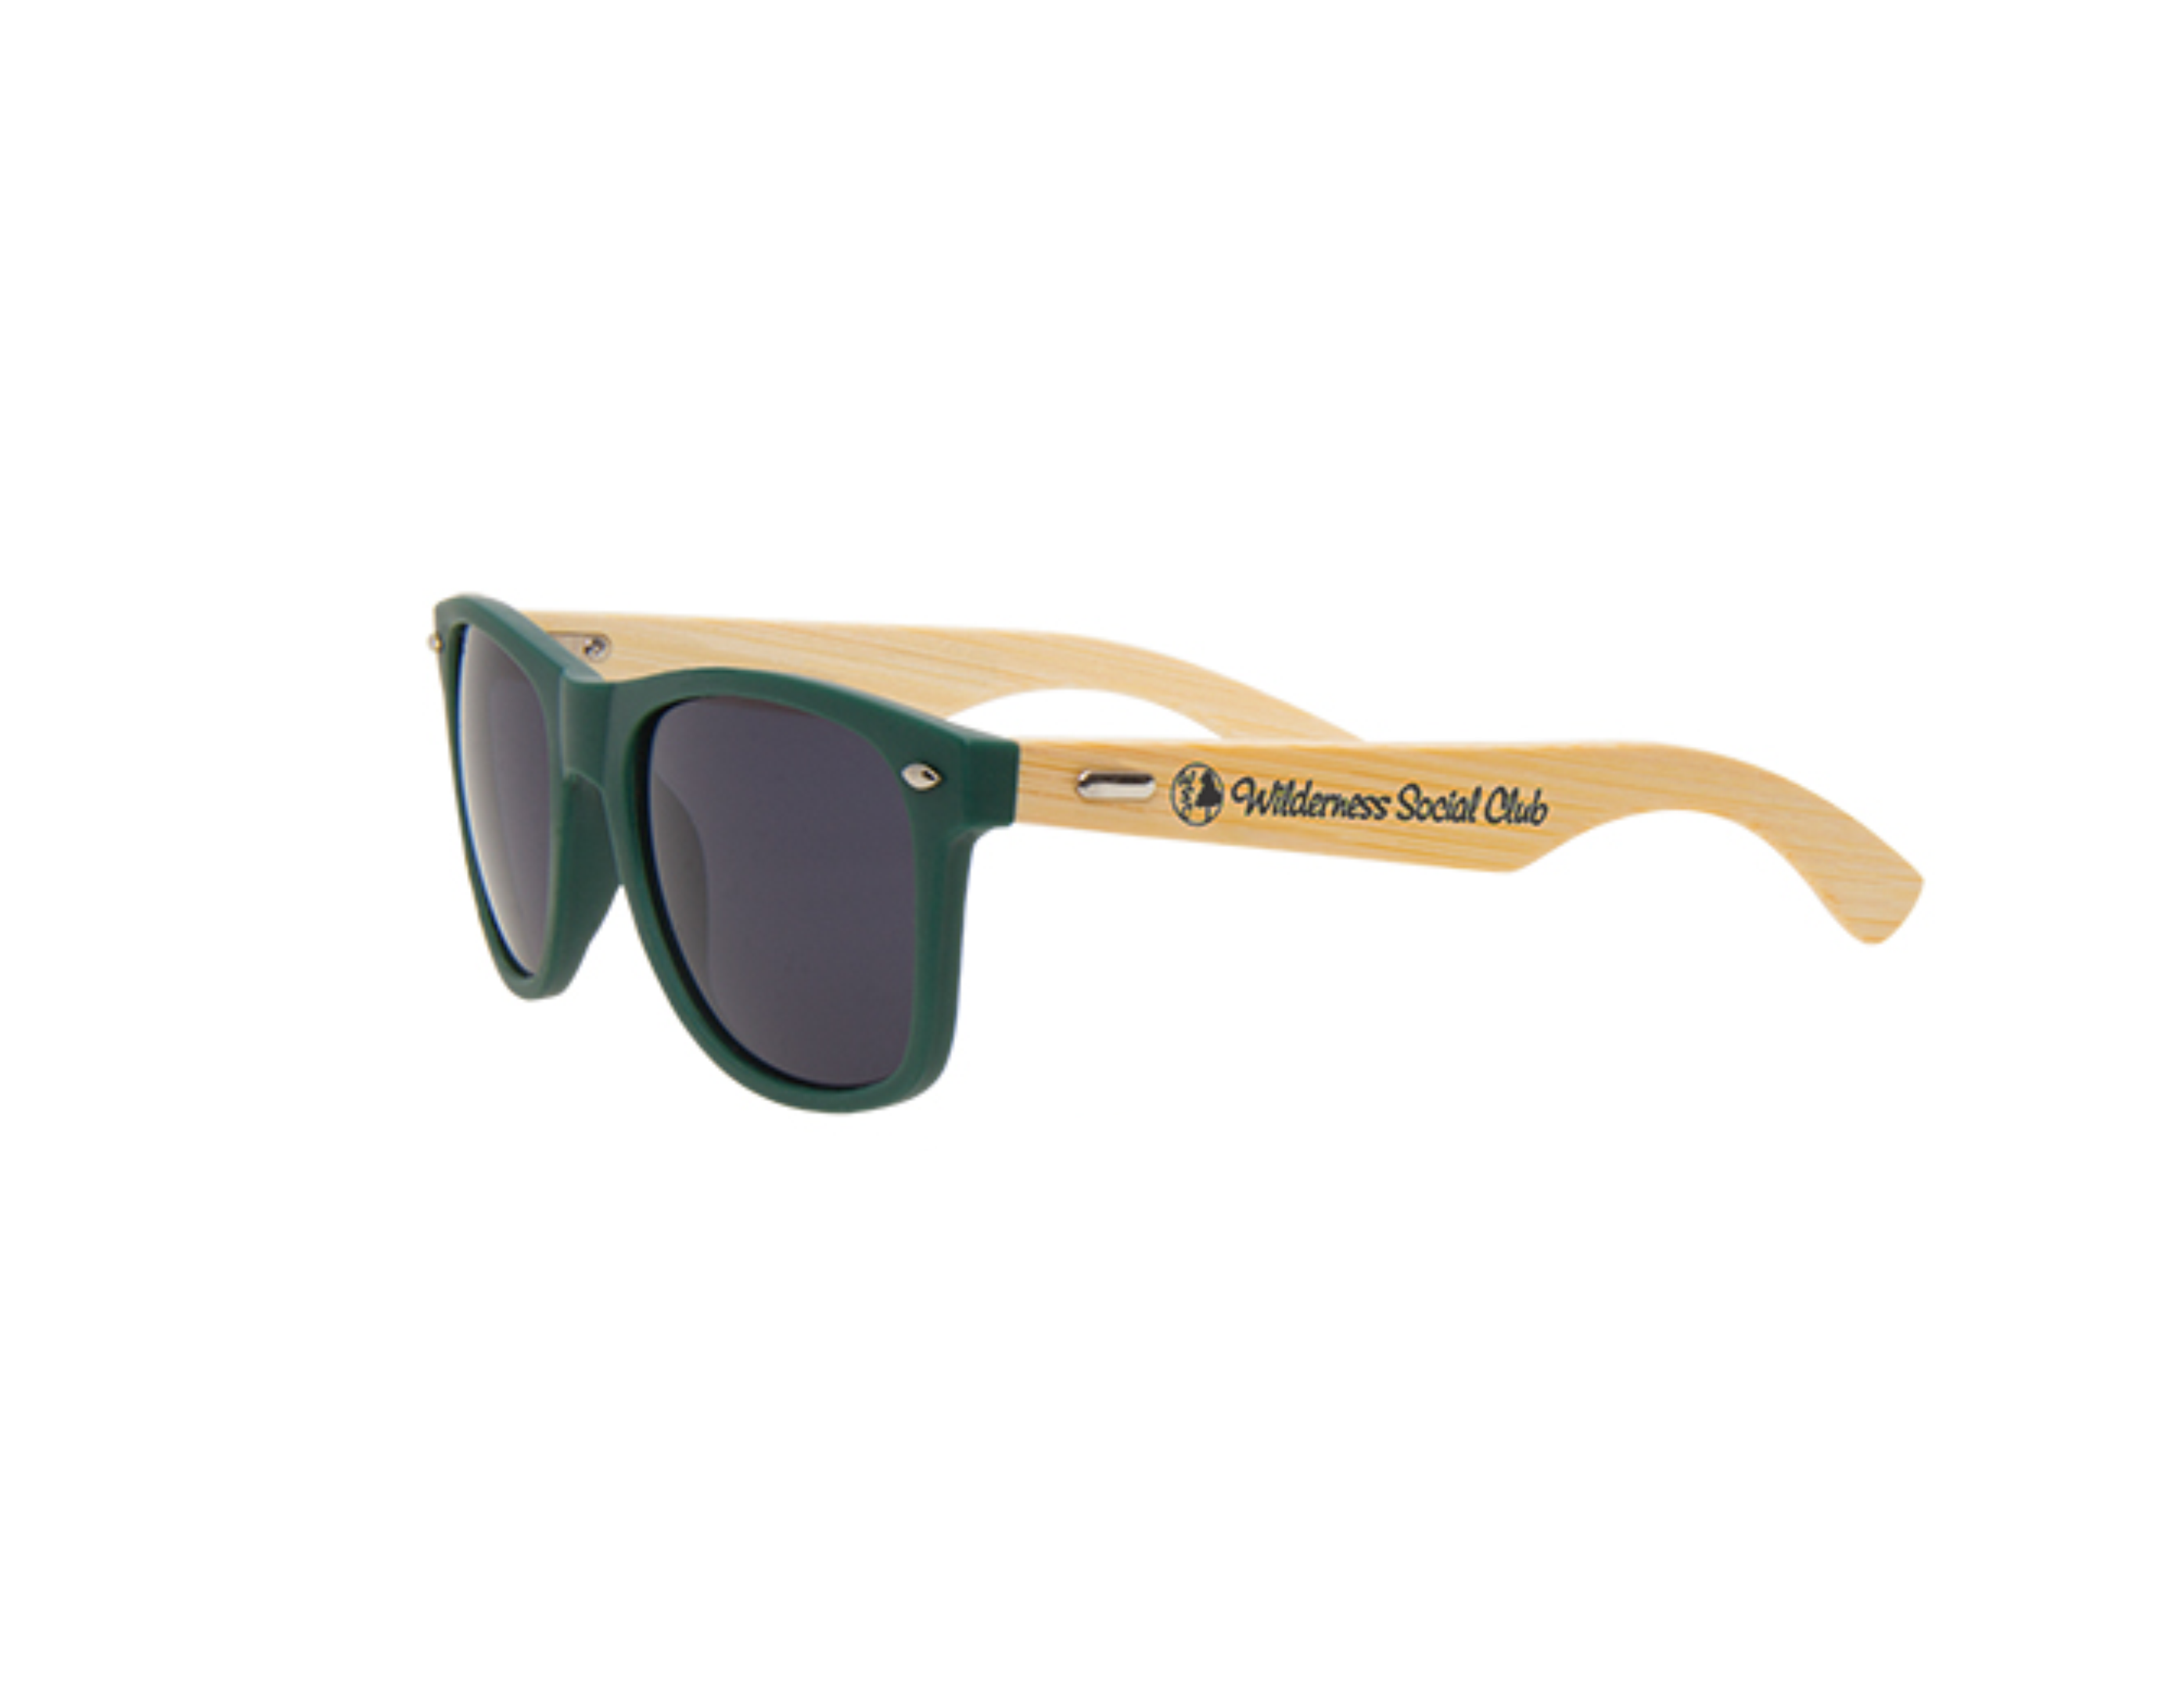 Bamboo Wood Framed Sunglasses | Express Impressions Inc.